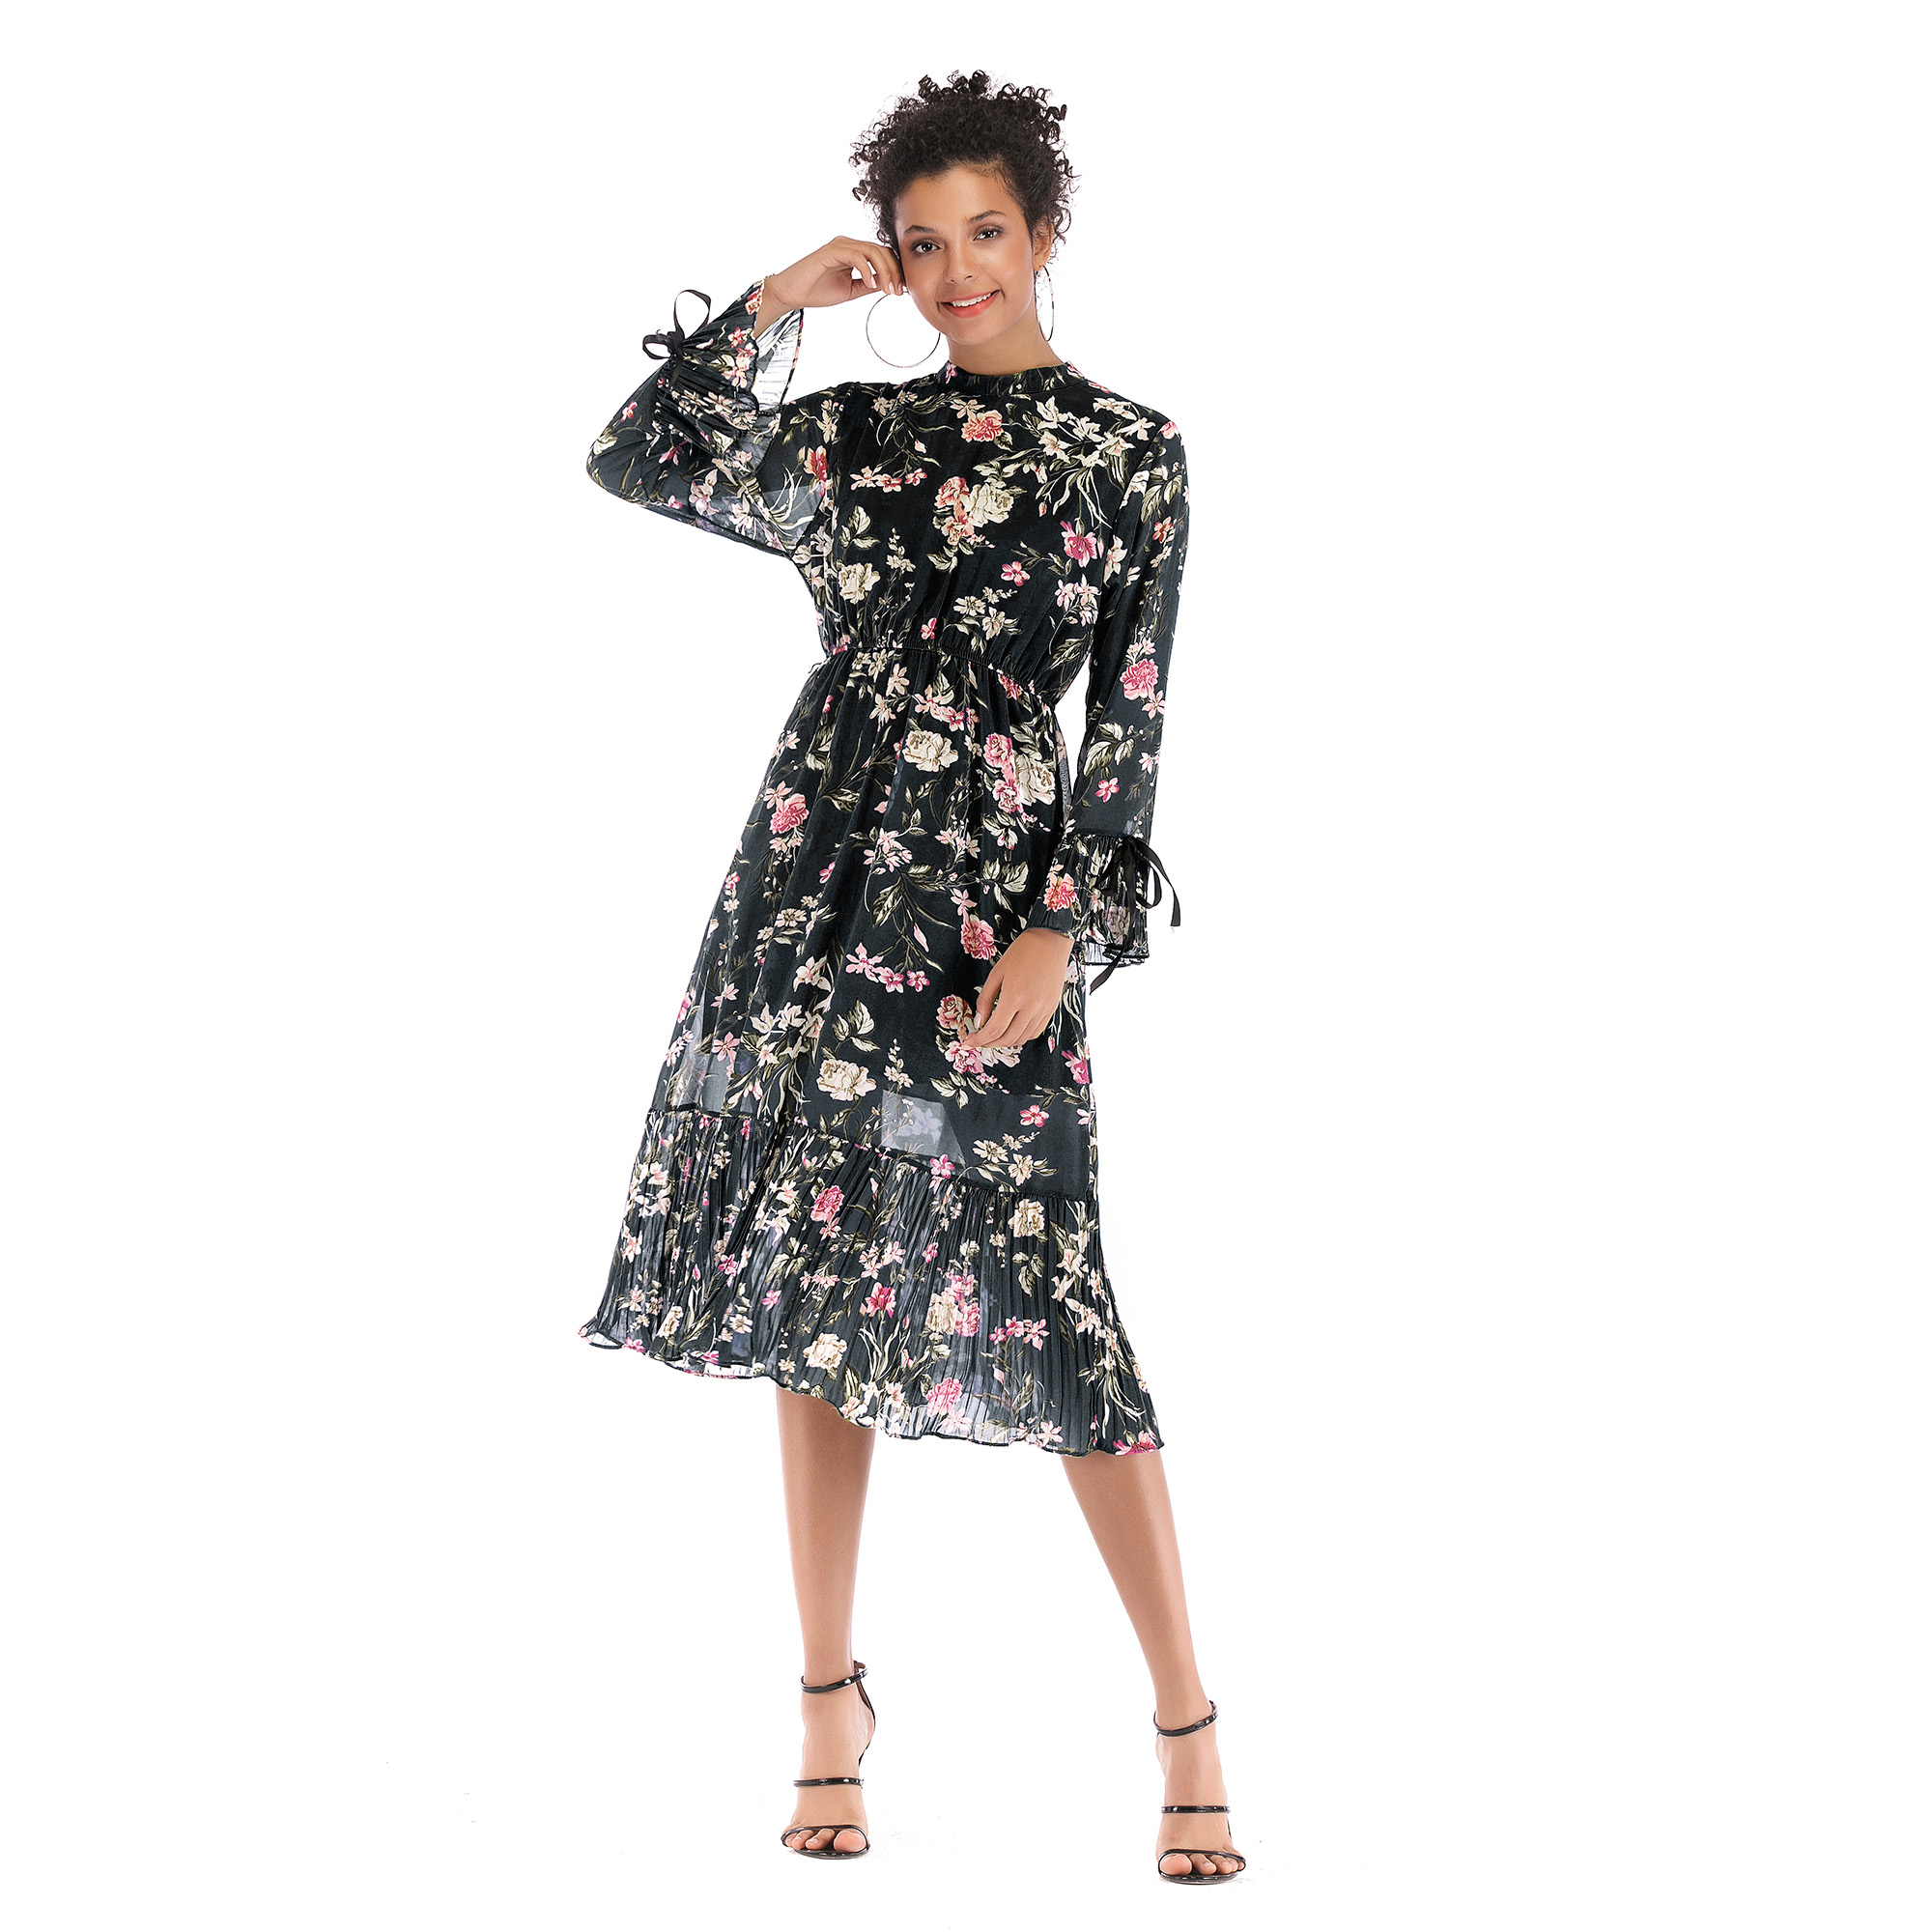 VZFF Multicolor Party Chiffon round neck flare sleeve pleated floral dress floral large swing dress 2019 Autumn women dress in Dresses from Women 39 s Clothing